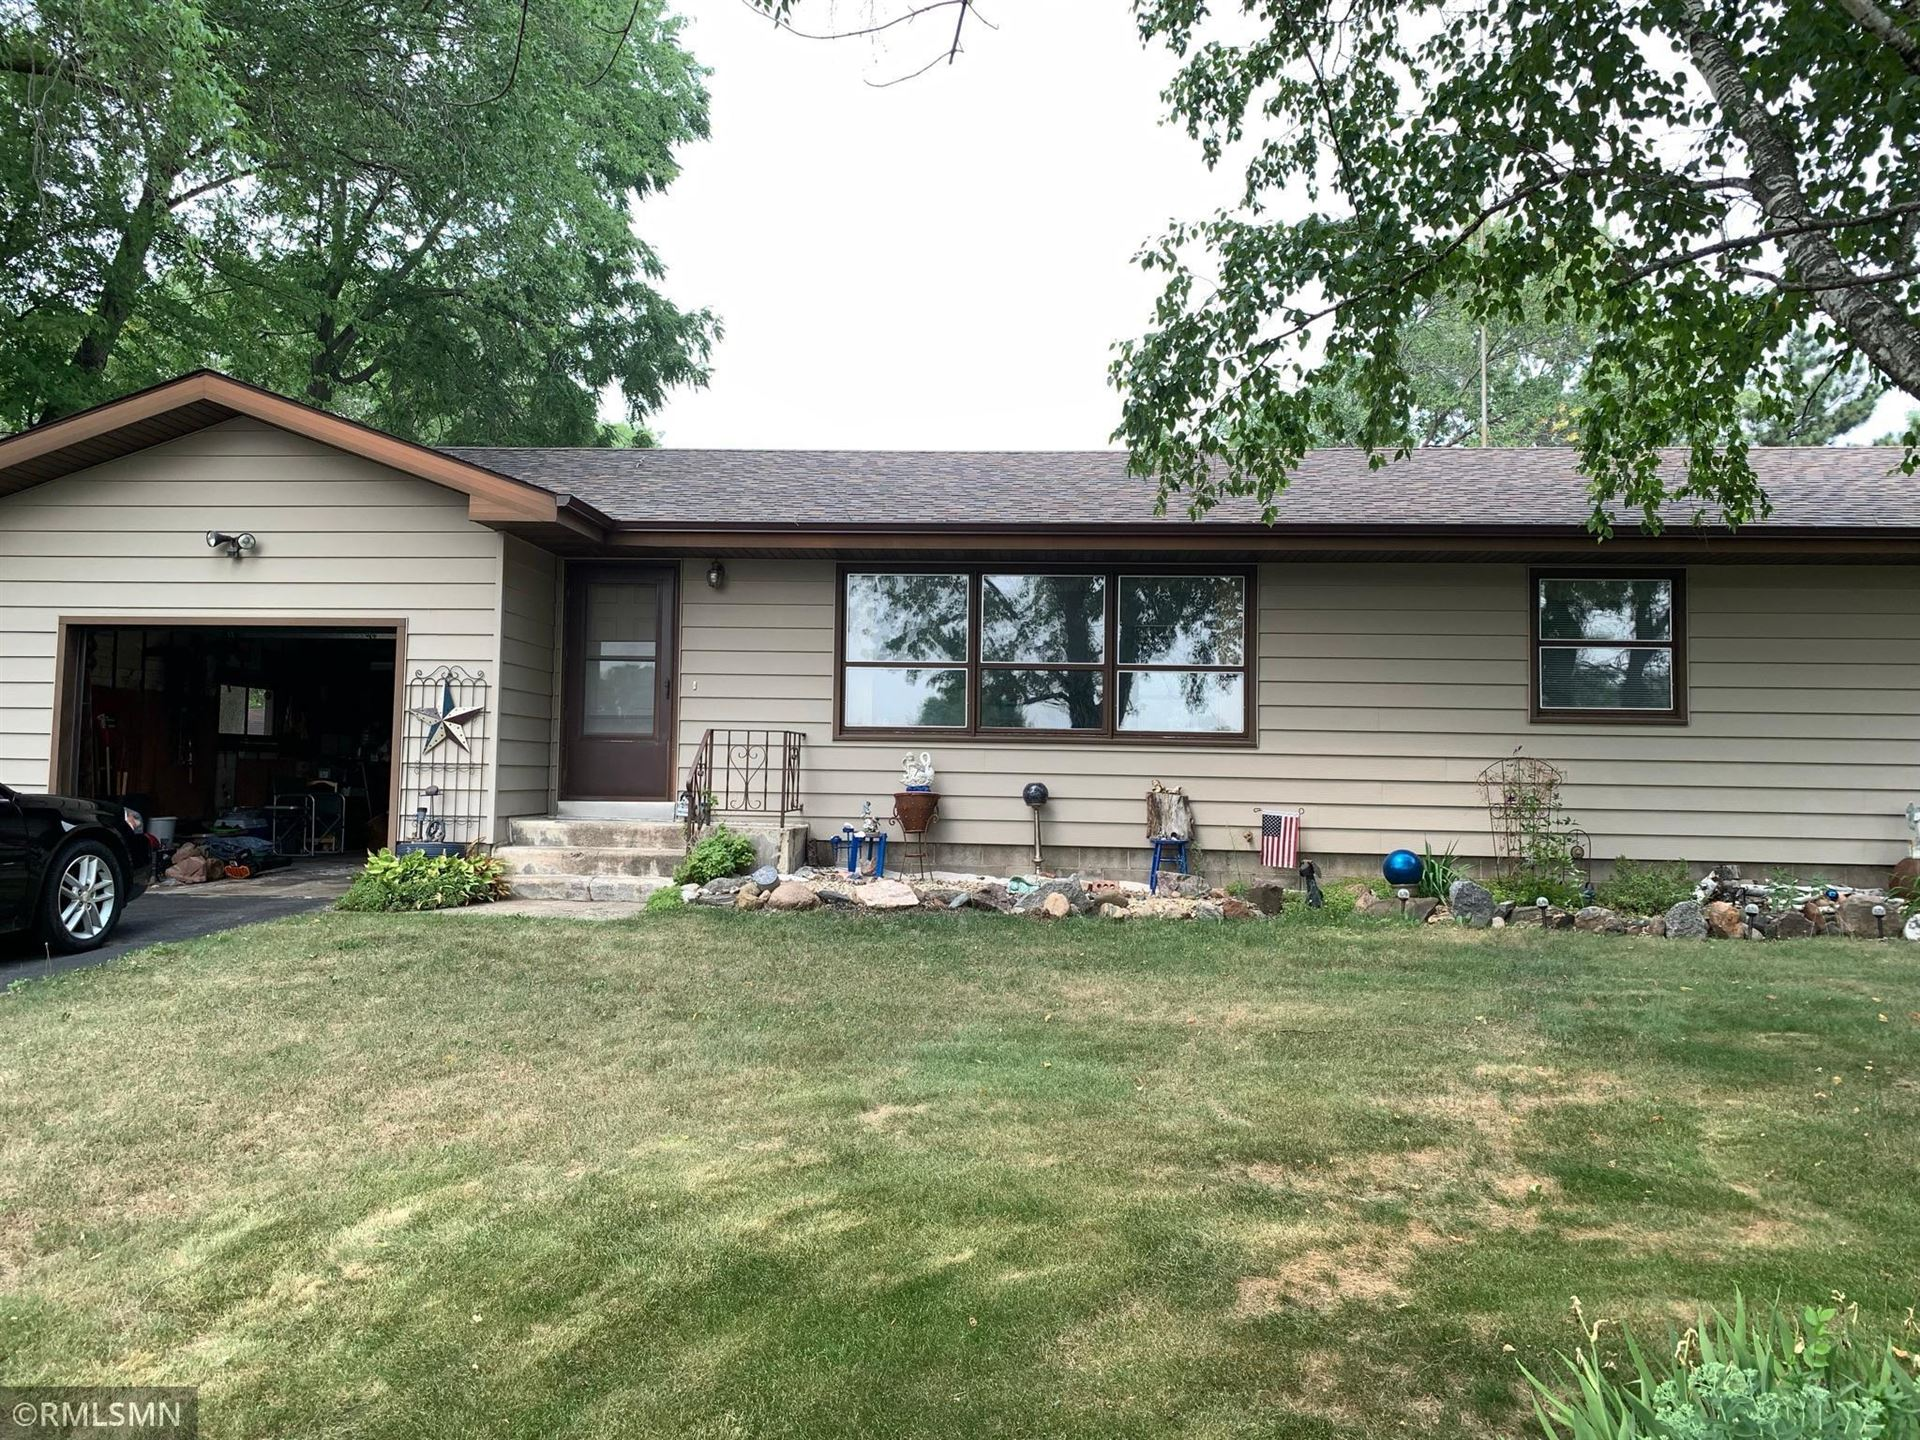 6012 County Road 5, Rice, MN 56367 - #: 6029712